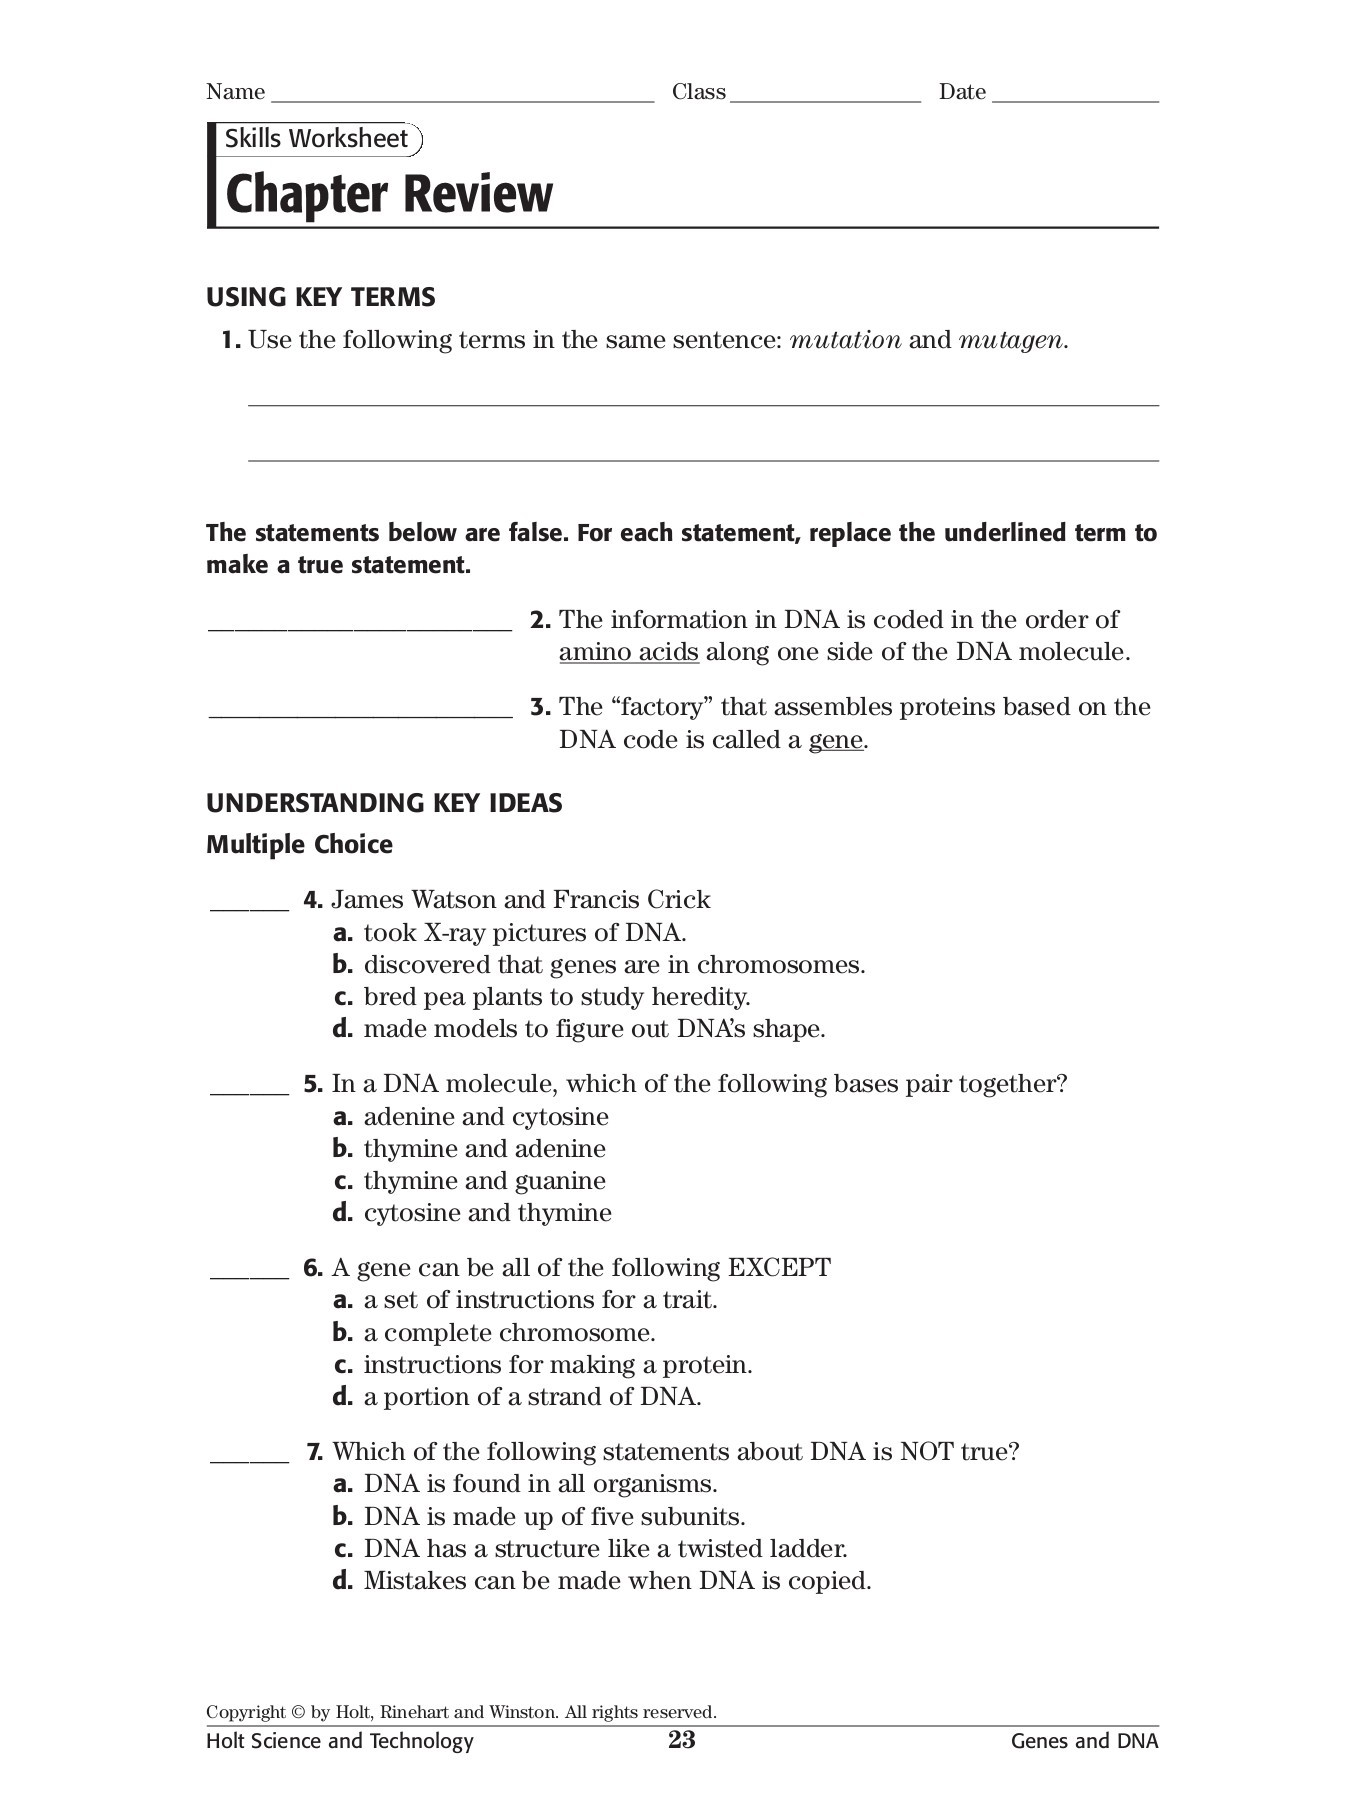 Bestseller Holt Sciences Page 23 Answer Key